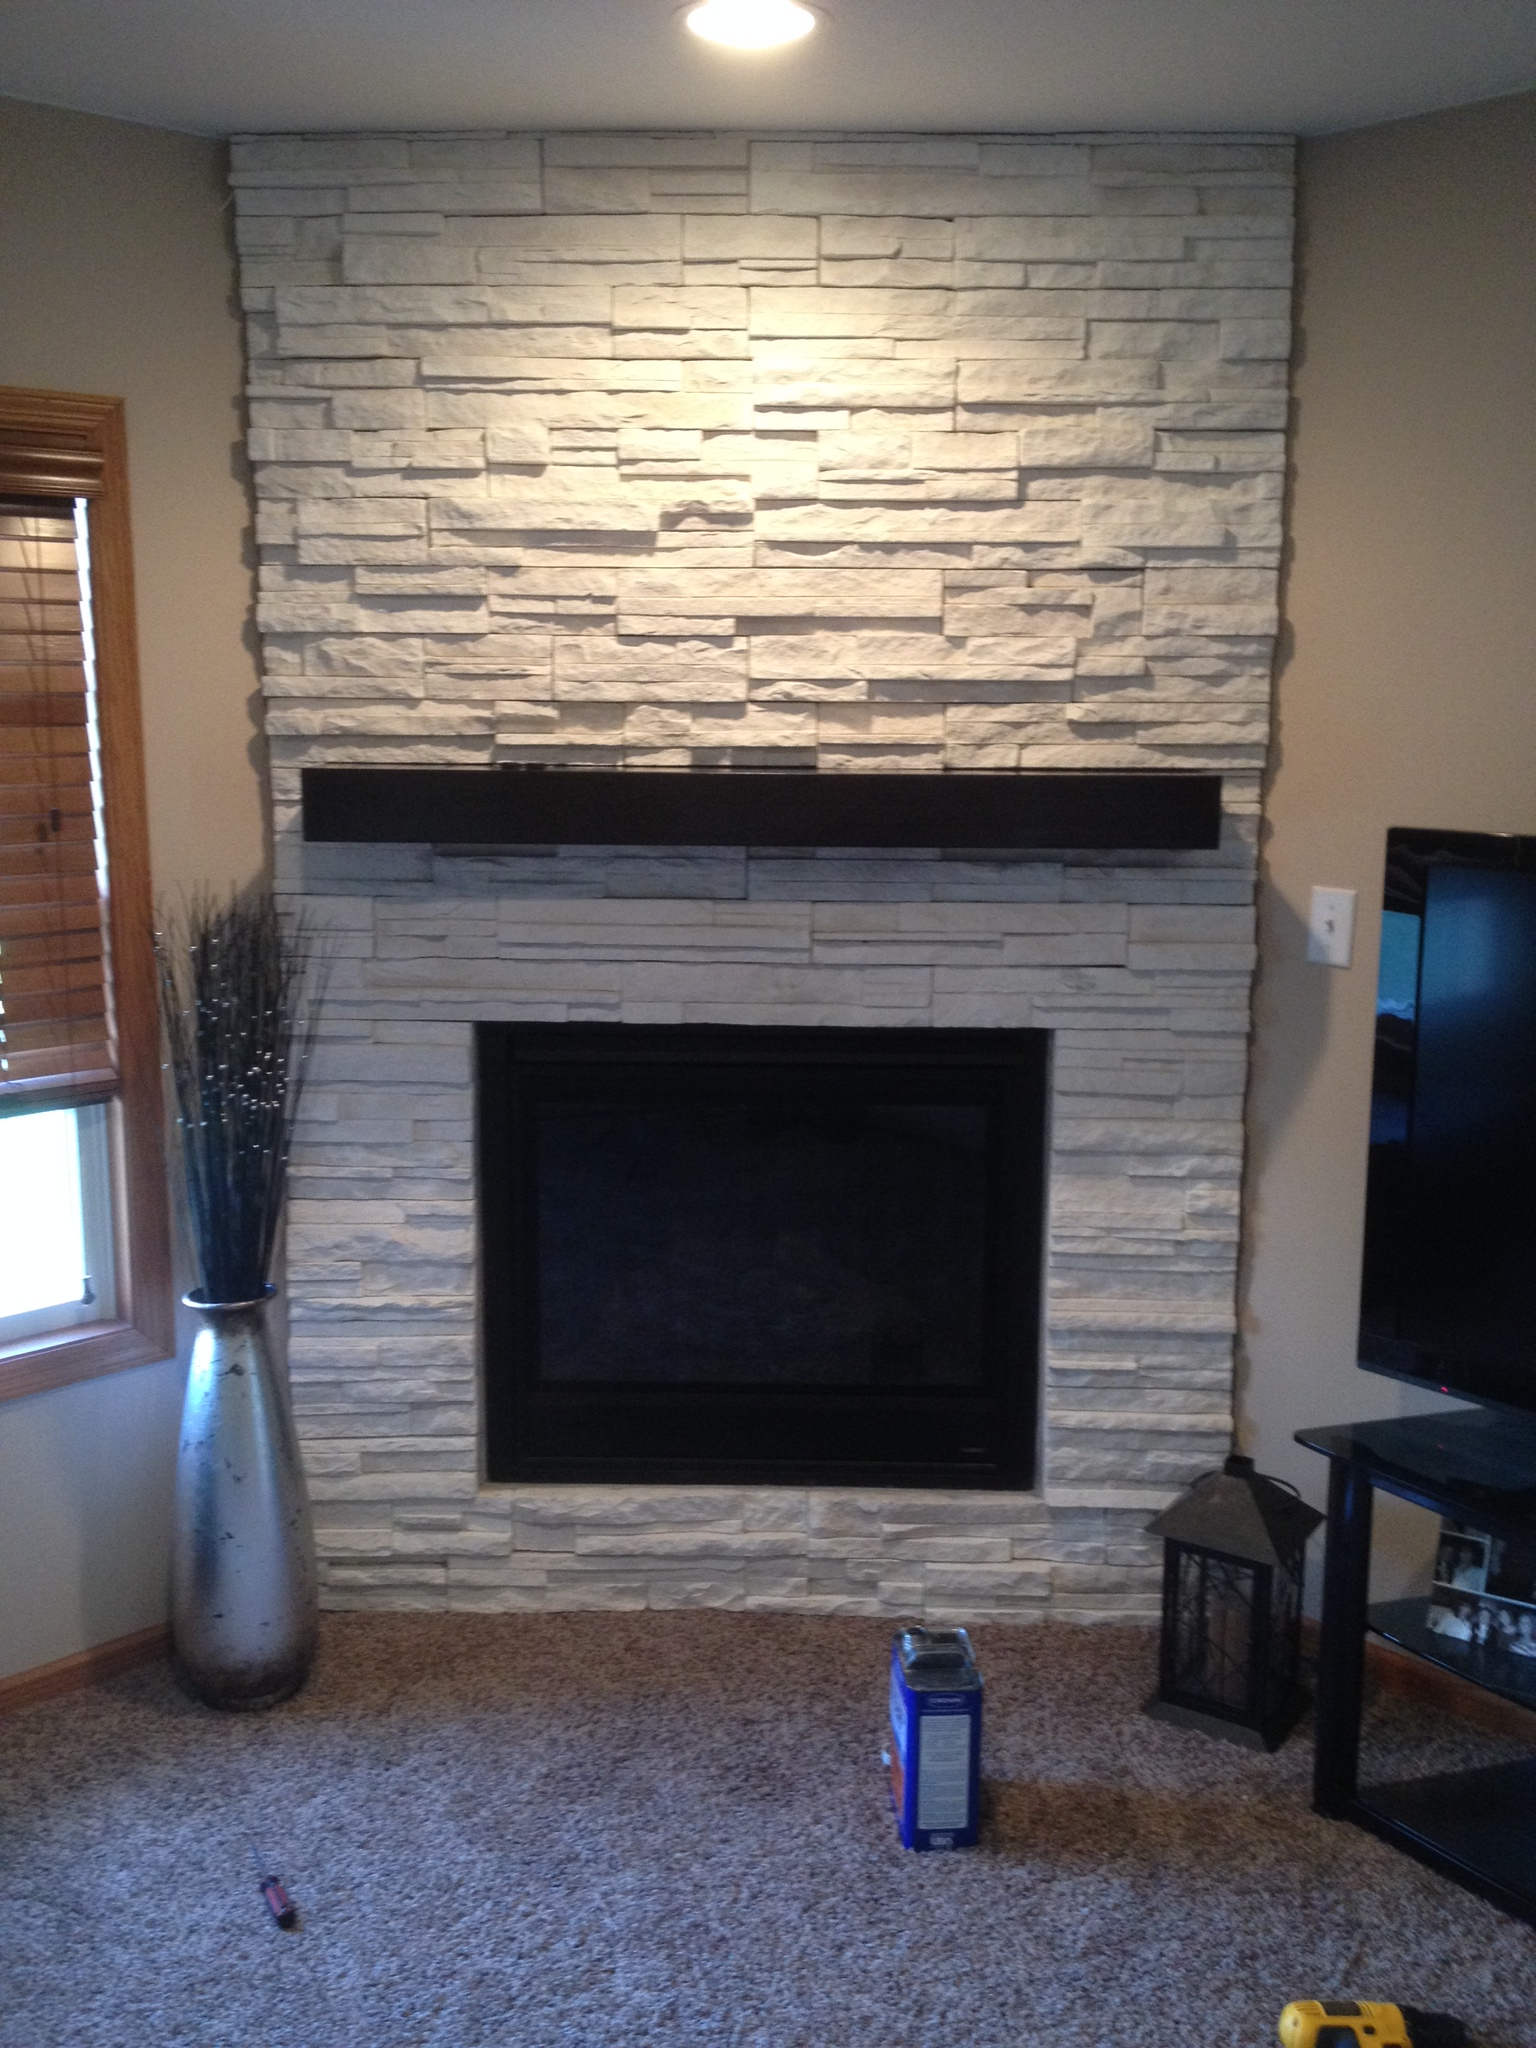 Novus Fireplace Novus Fireplace Elegance Brandt Heating And Air Conditioning